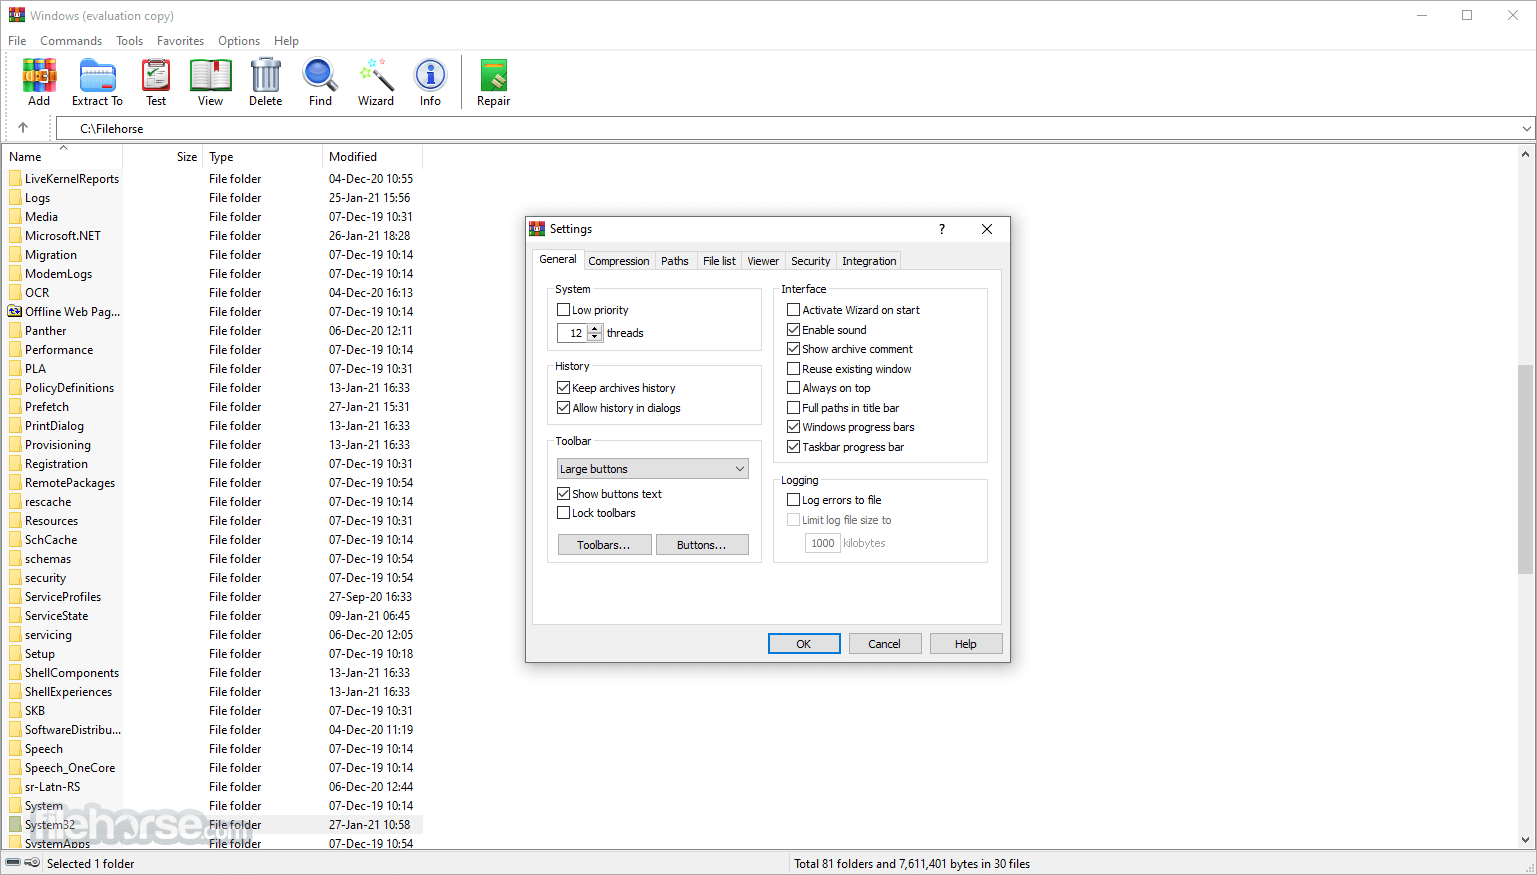 WinRAR 5.50 Beta 5 (32-bit) Screenshot 4